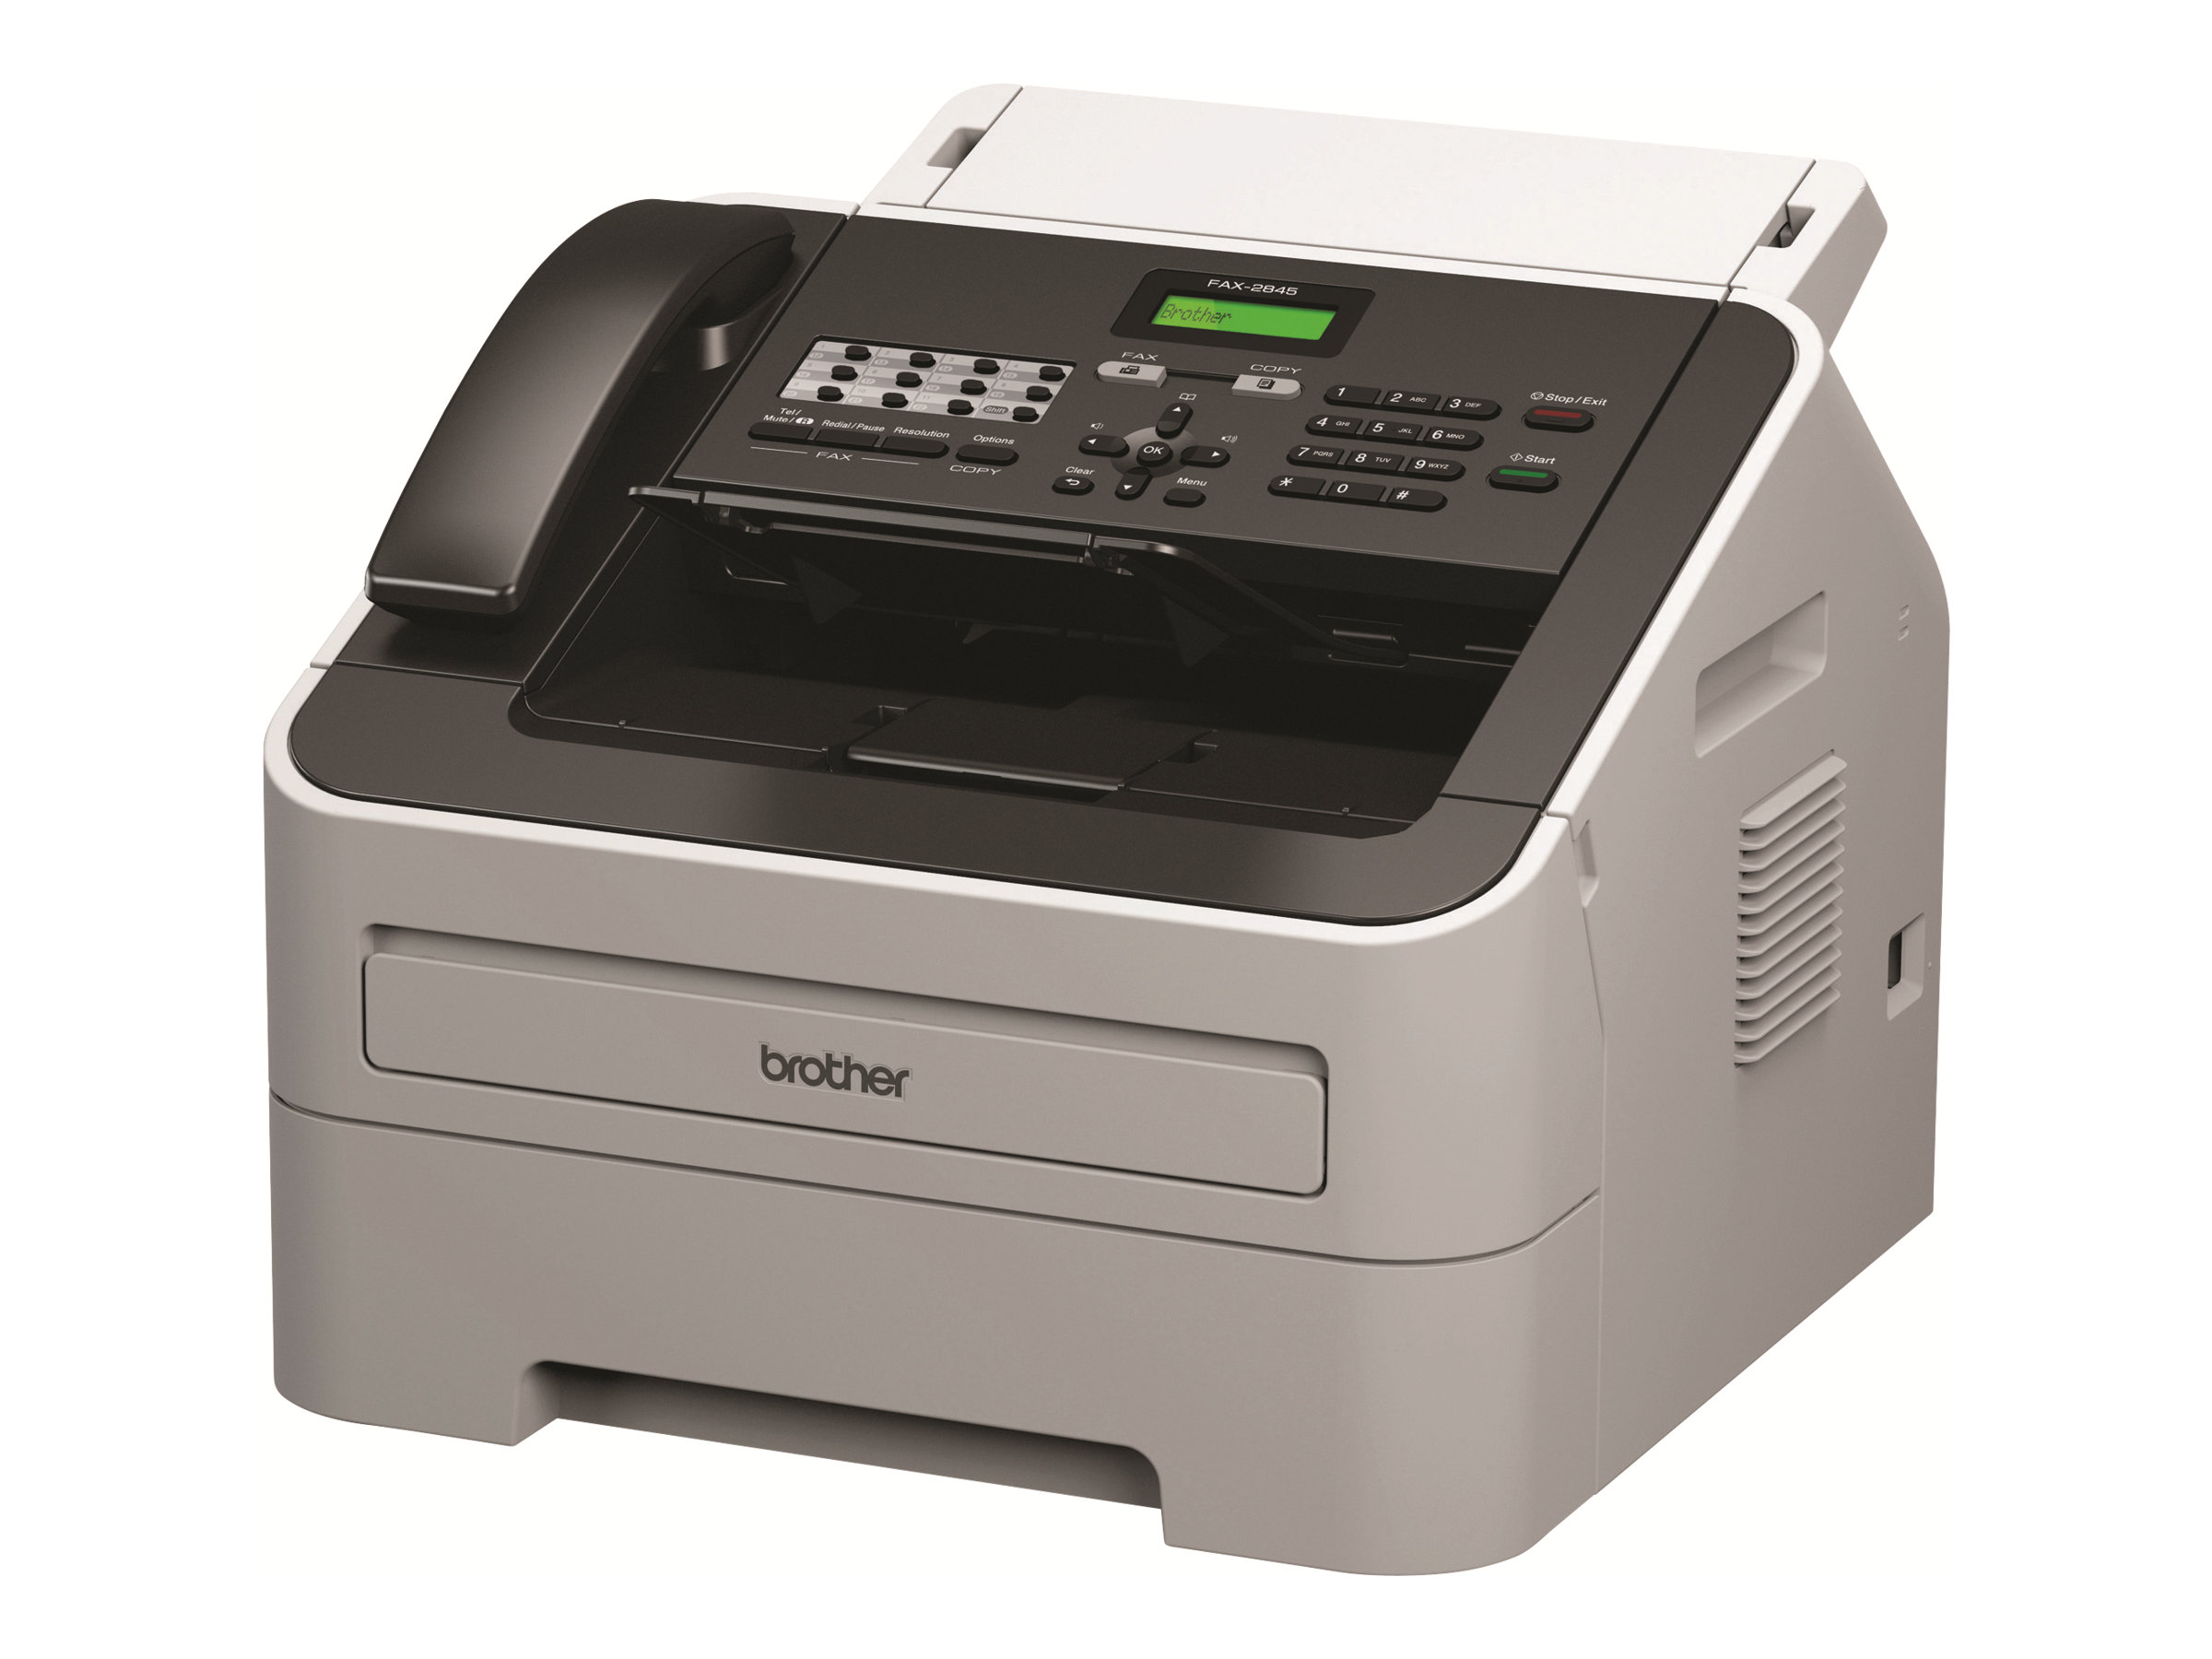 Brother FAX-2845 - Faxger?t / Kopierer